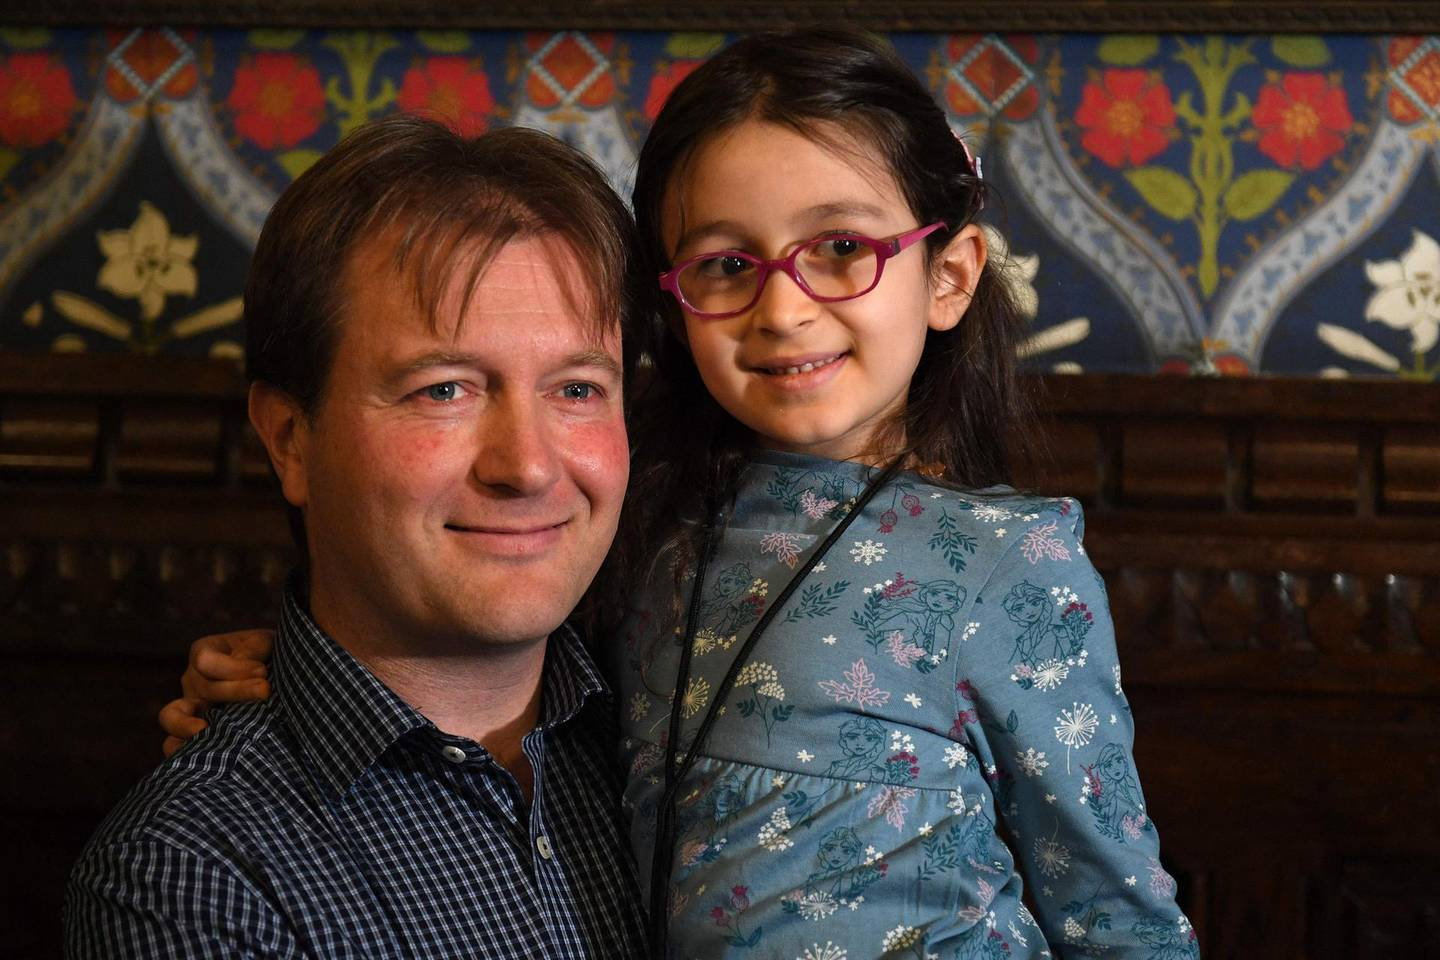 (FILES) In this file photo taken on October 11, 2019 Richard Ratcliffe, husband of British-Iranian aid worker Nazanin Zaghari-Ratcliffe jailed in Tehran since 2016, holds his daughter Gabriella during a news conference in London, on October 11, 2019. The release of Nazanin Zaghari-Ratcliffe, a UK-Iraninan dual national held in Tehran, could be in doubt, her husband Richard Ratcliffe told the BBC on March 6, 2021, a day before the end of her five-year jail term. Zaghari-Ratcliffe, who was detained in Iran in 2016, is due to be released on March 7, 2021, the official end of a sentence over charges she plotted to overthrow the regime in Tehran. Nazanin, now 42, has strenuously denied the accusations with her case becoming a matter of major diplomatic disagreement between Britain and Iran during the five years she has spent separated from her husband and young daughter.   / AFP / DANIEL LEAL-OLIVAS